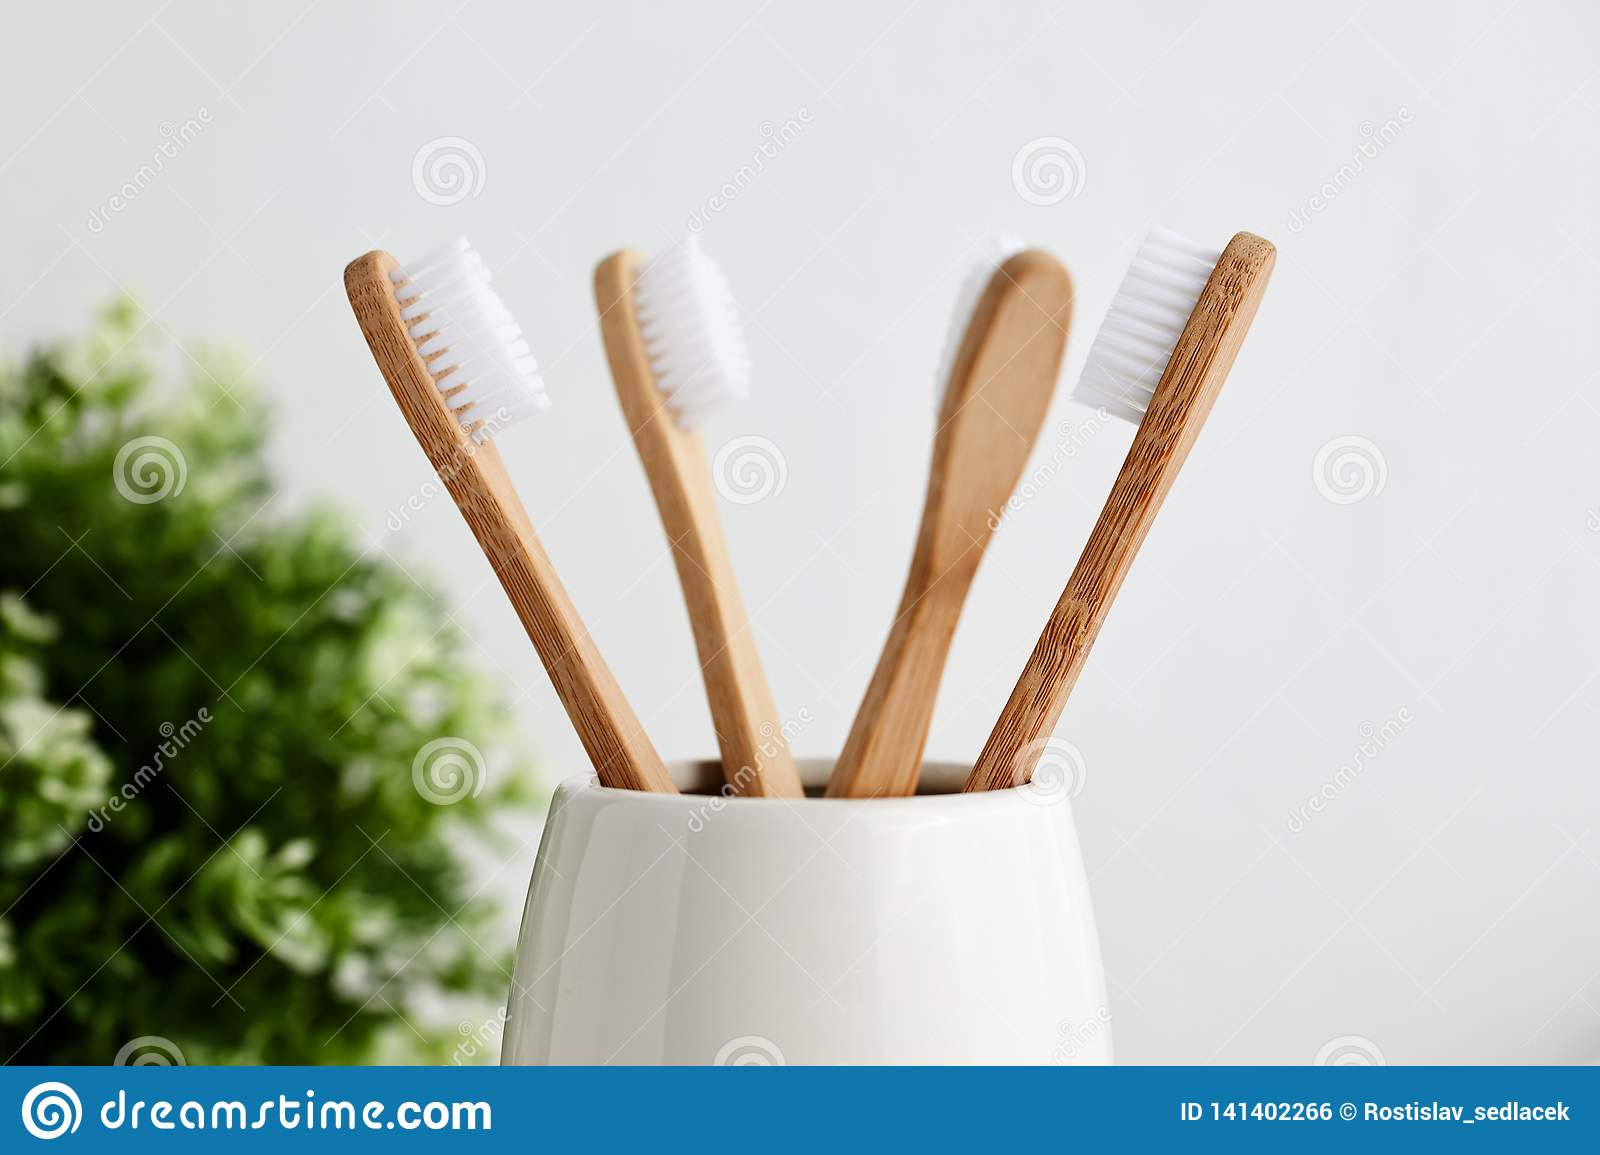 Four bamboo toothbrushes in gray glass